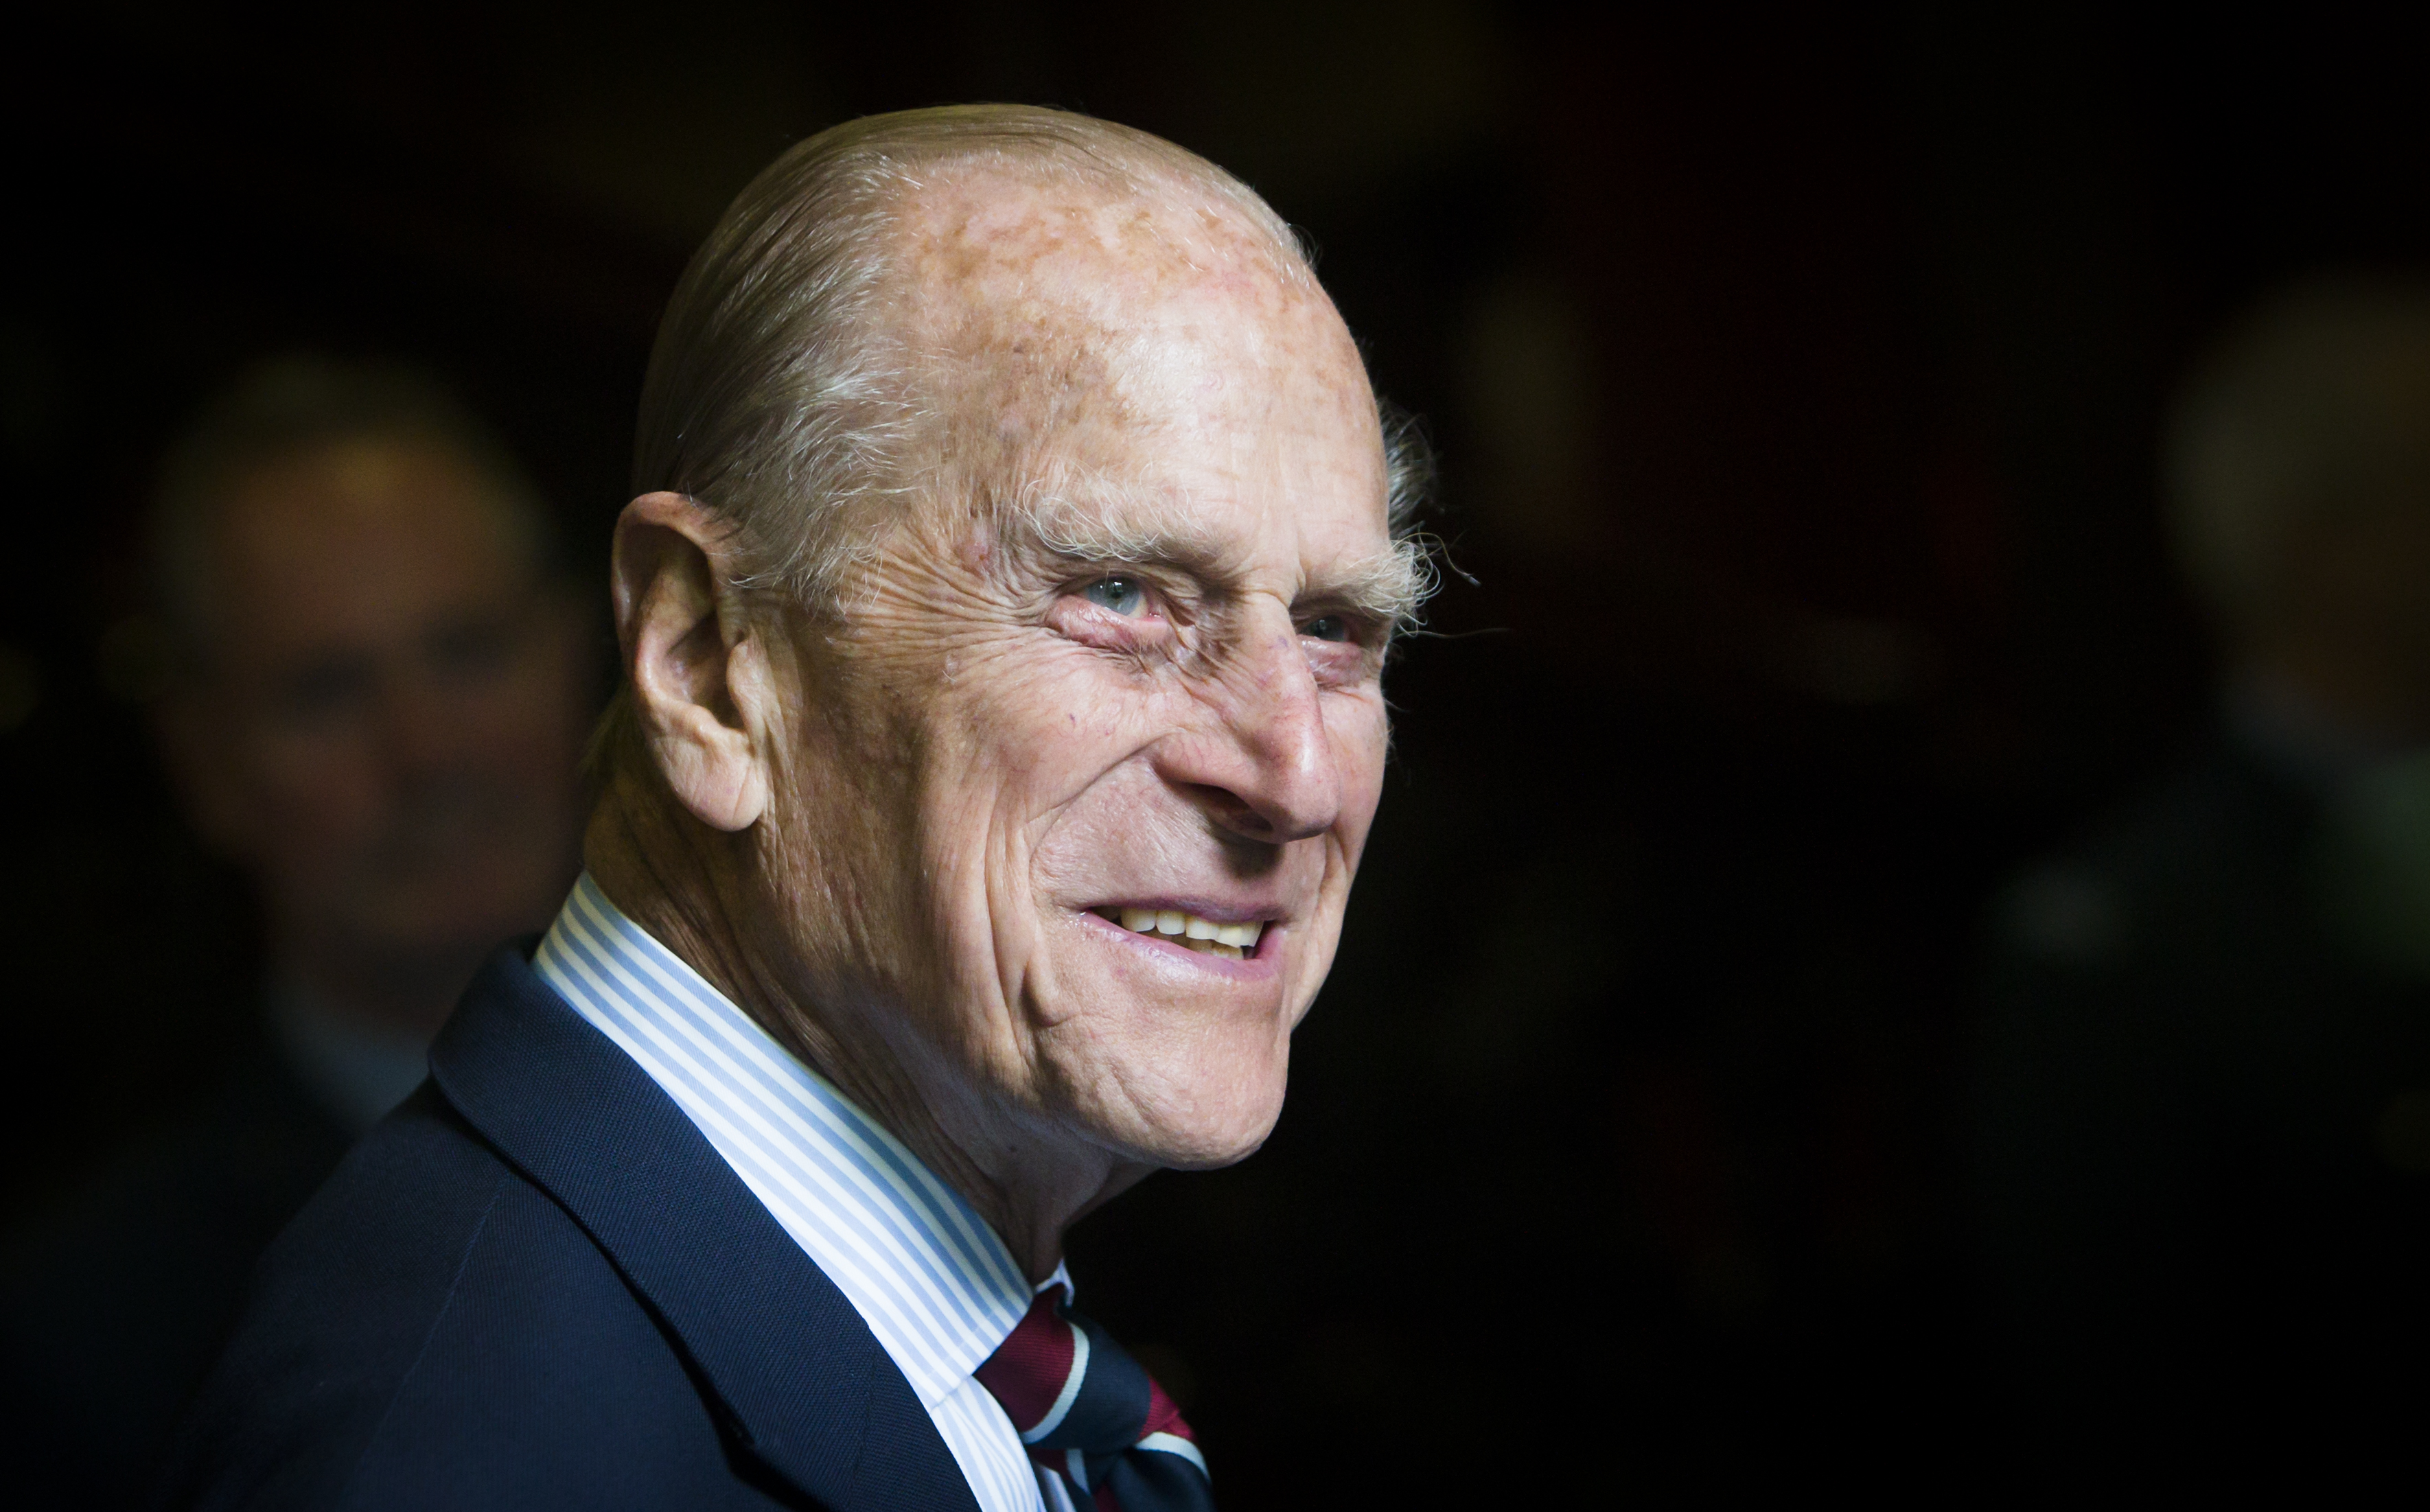 Freemasons to raise funds for charities supported by Prince Philip